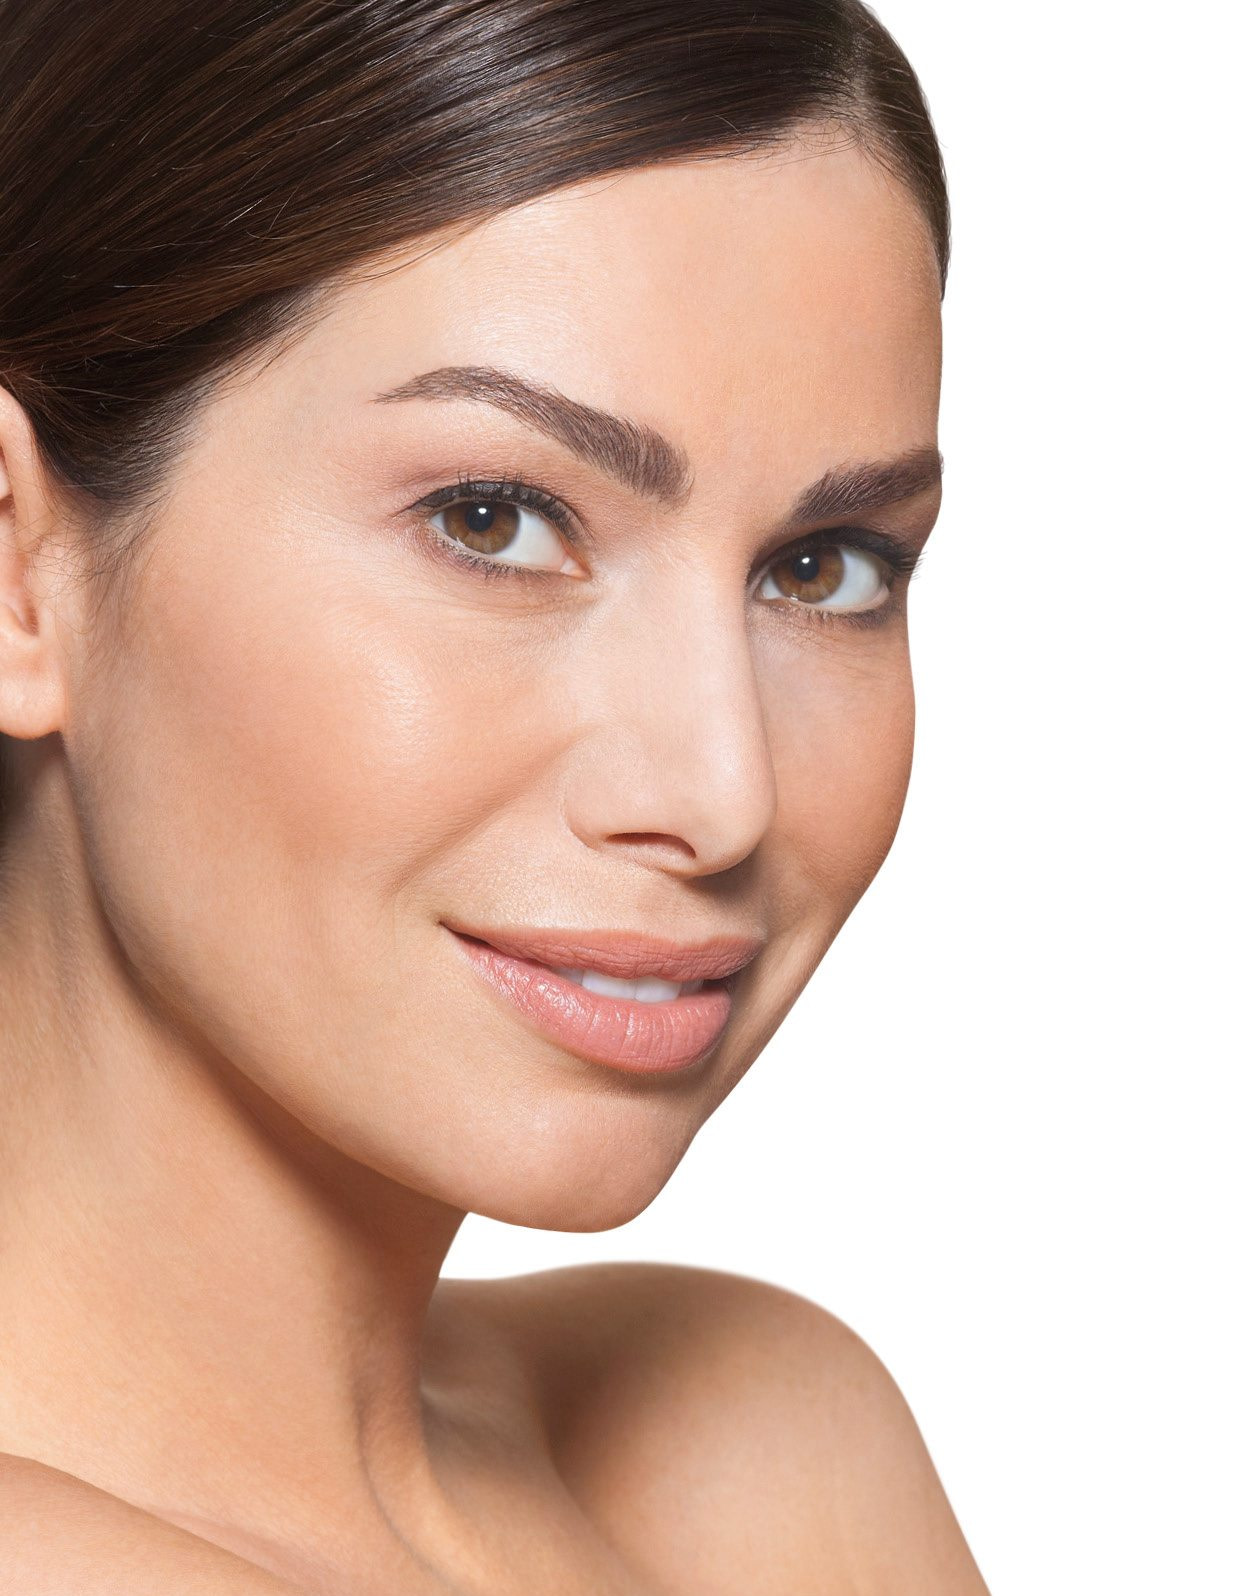 Rosana Volume  - Delaying the signs of Ageing with Dermal Fillers